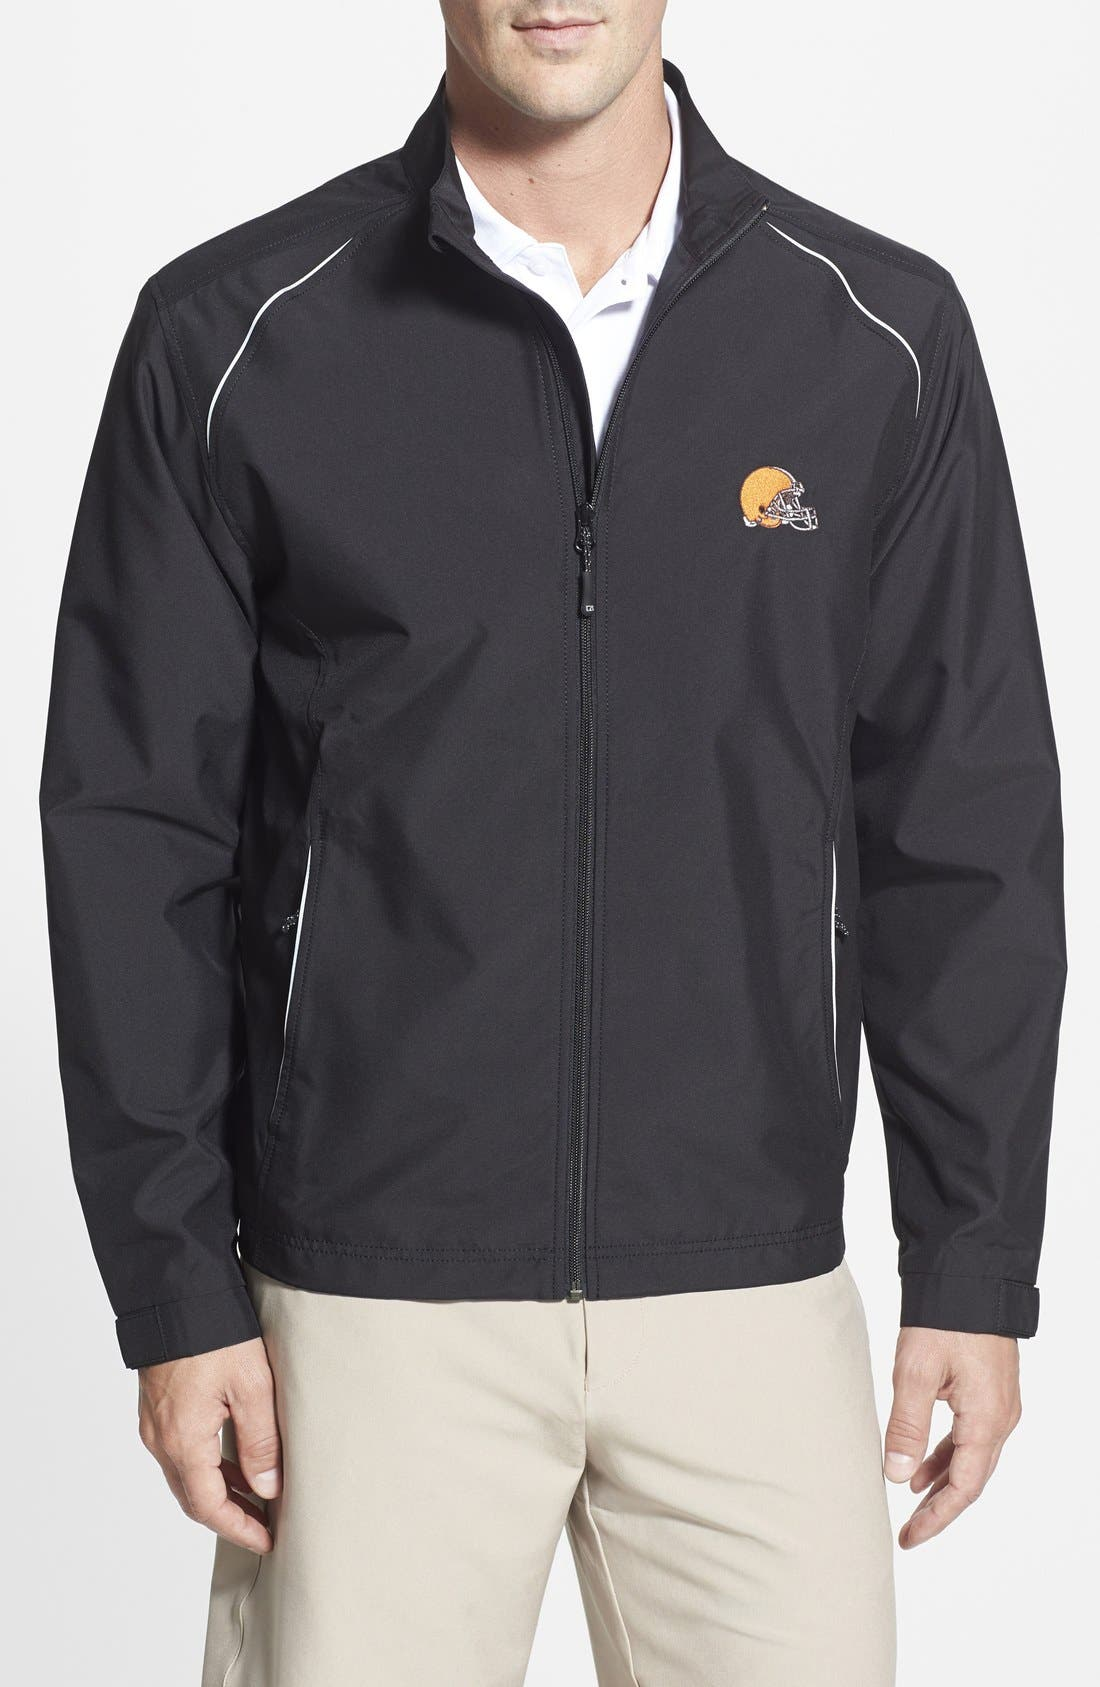 Cleveland Browns - Beacon WeatherTec Wind & Water Resistant Jacket,                         Main,                         color, 001